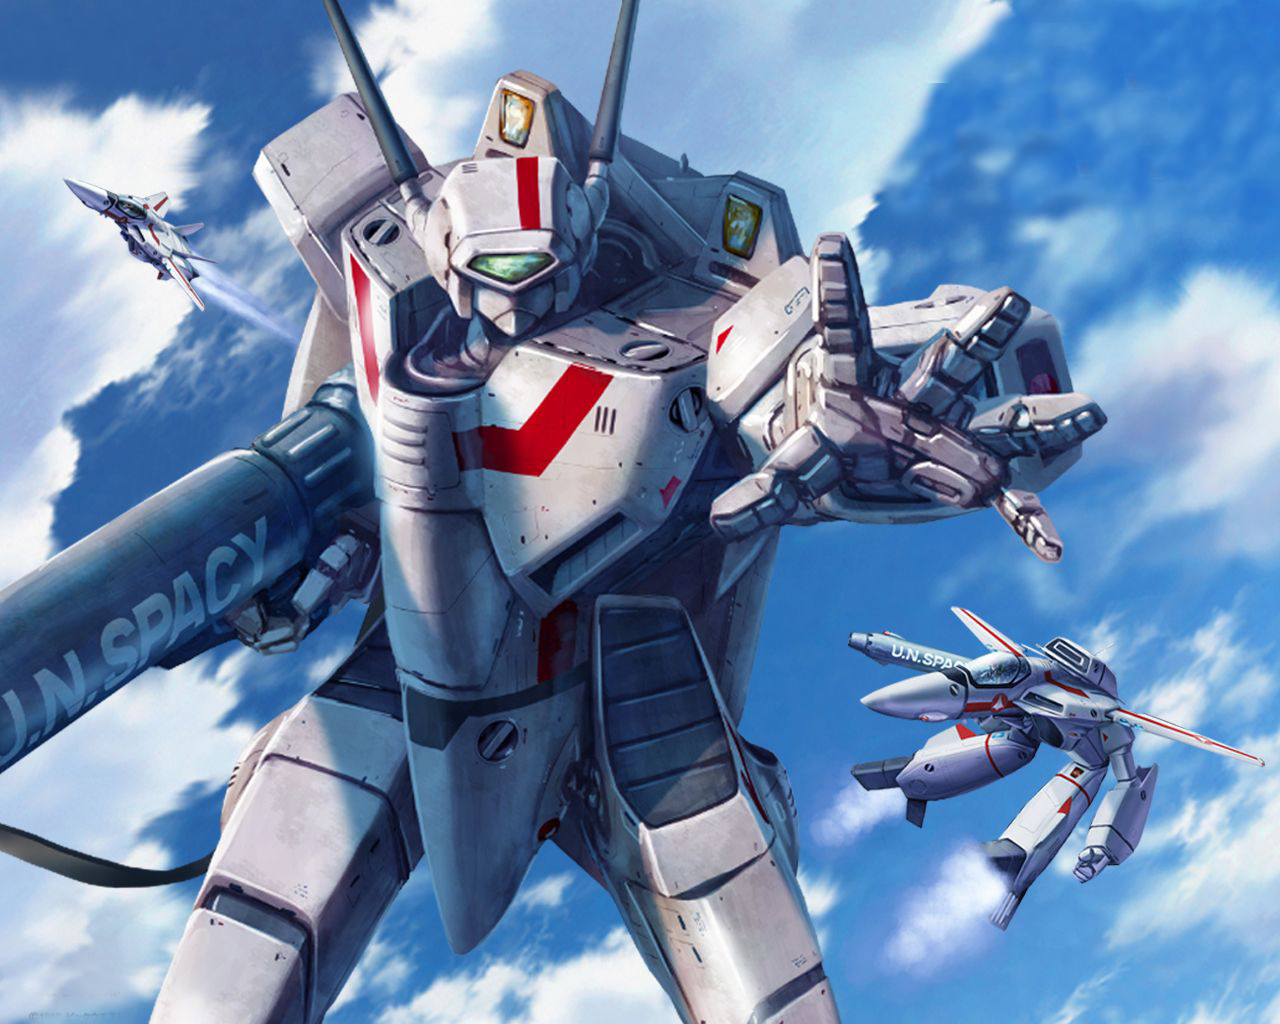 The VF-1 Valkyrie: A Truly Iconic Mecha Design - Den of Geek